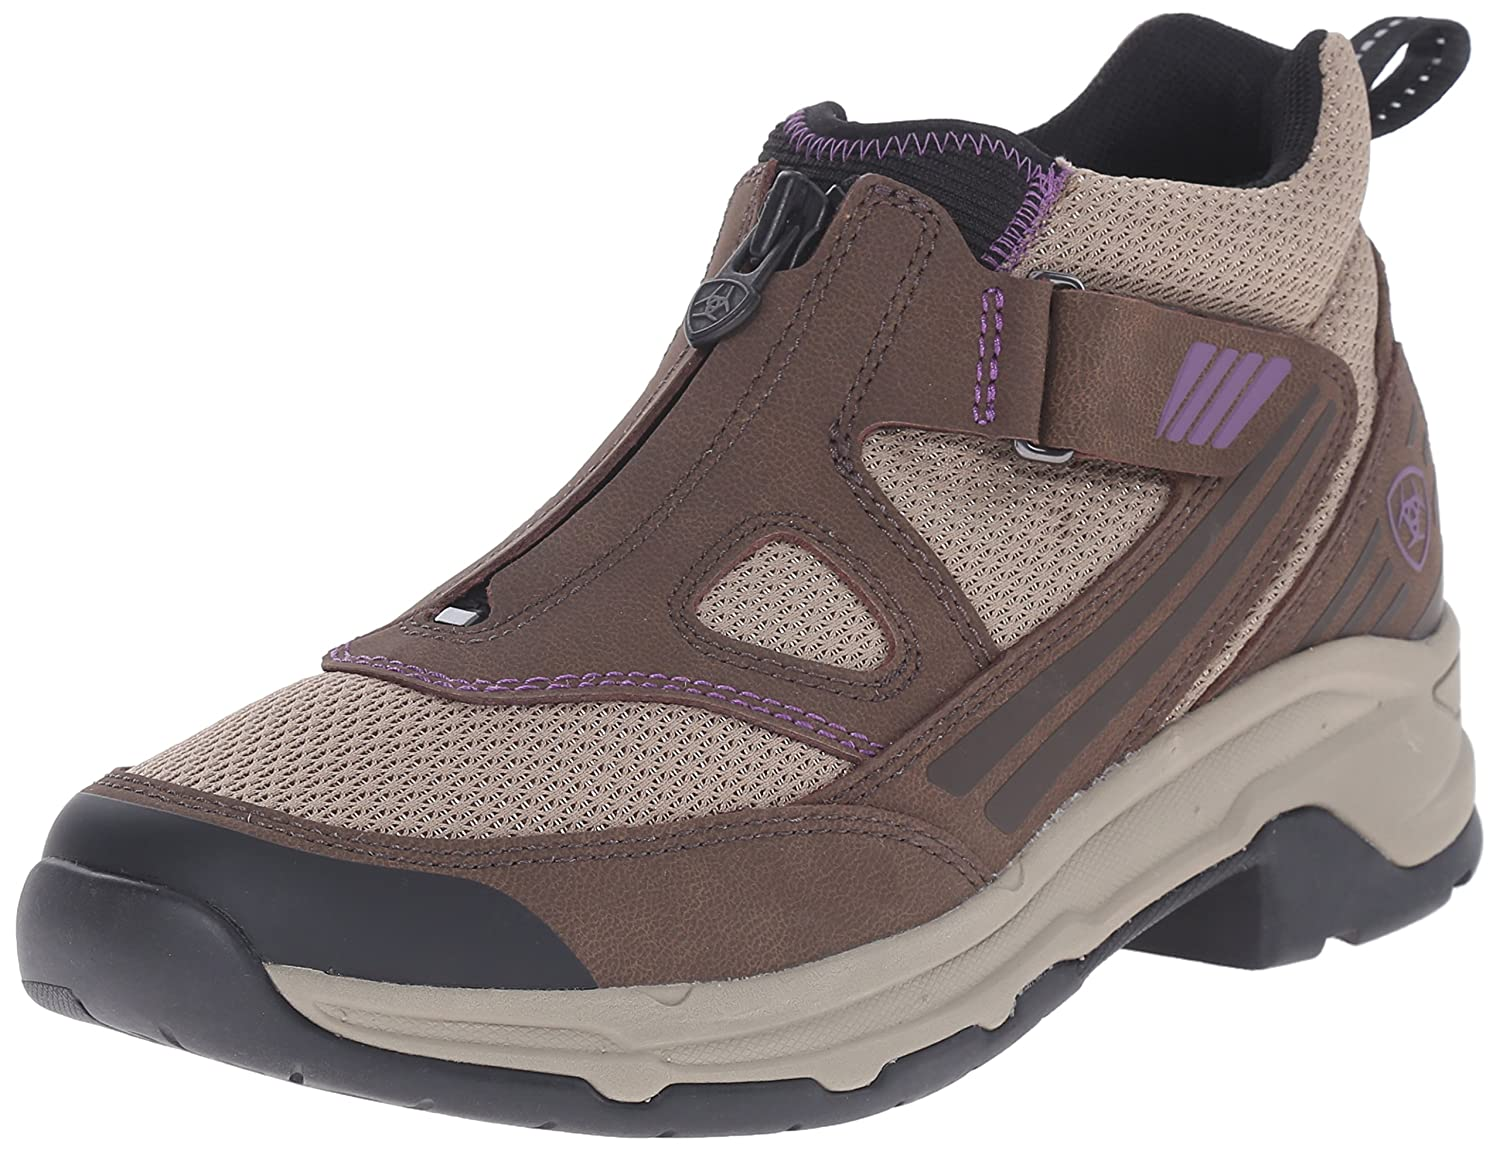 Ariat Women's Maxtrak Ul Zip Hiking Shoe - Click Image to Close